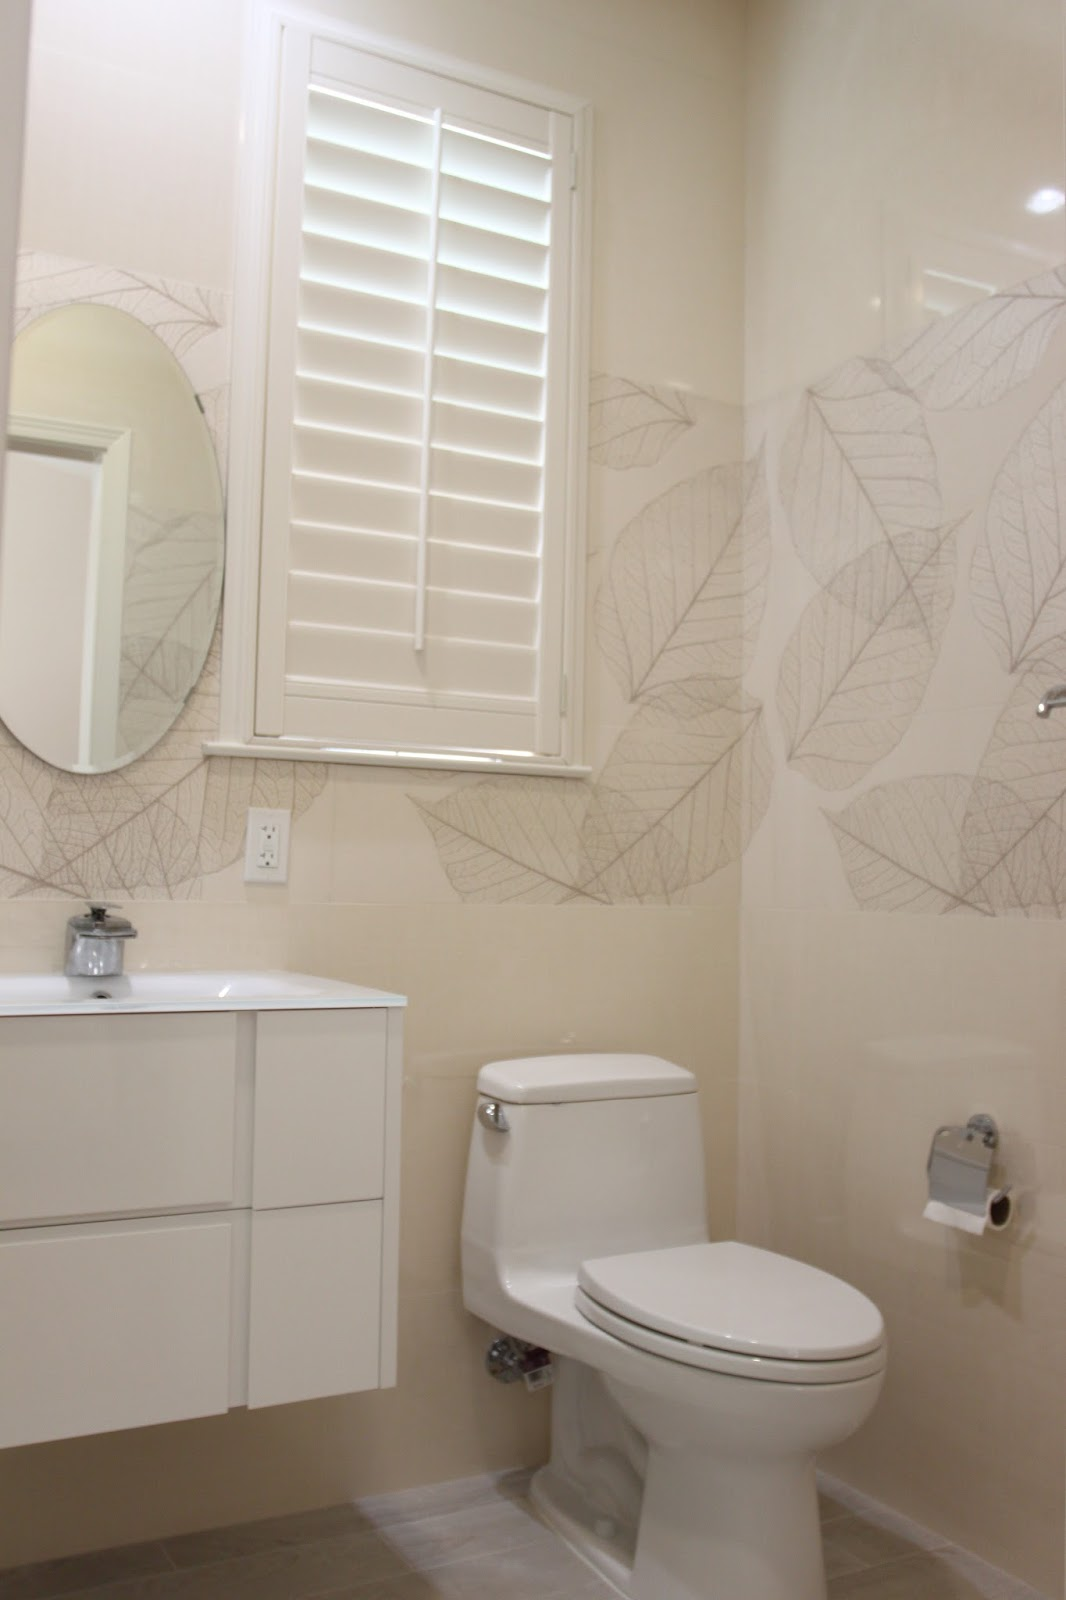 Epoxy Grout For Bathrooms: Hong Bo Hardware Supply: Johnson Ave, Cupertino, CA